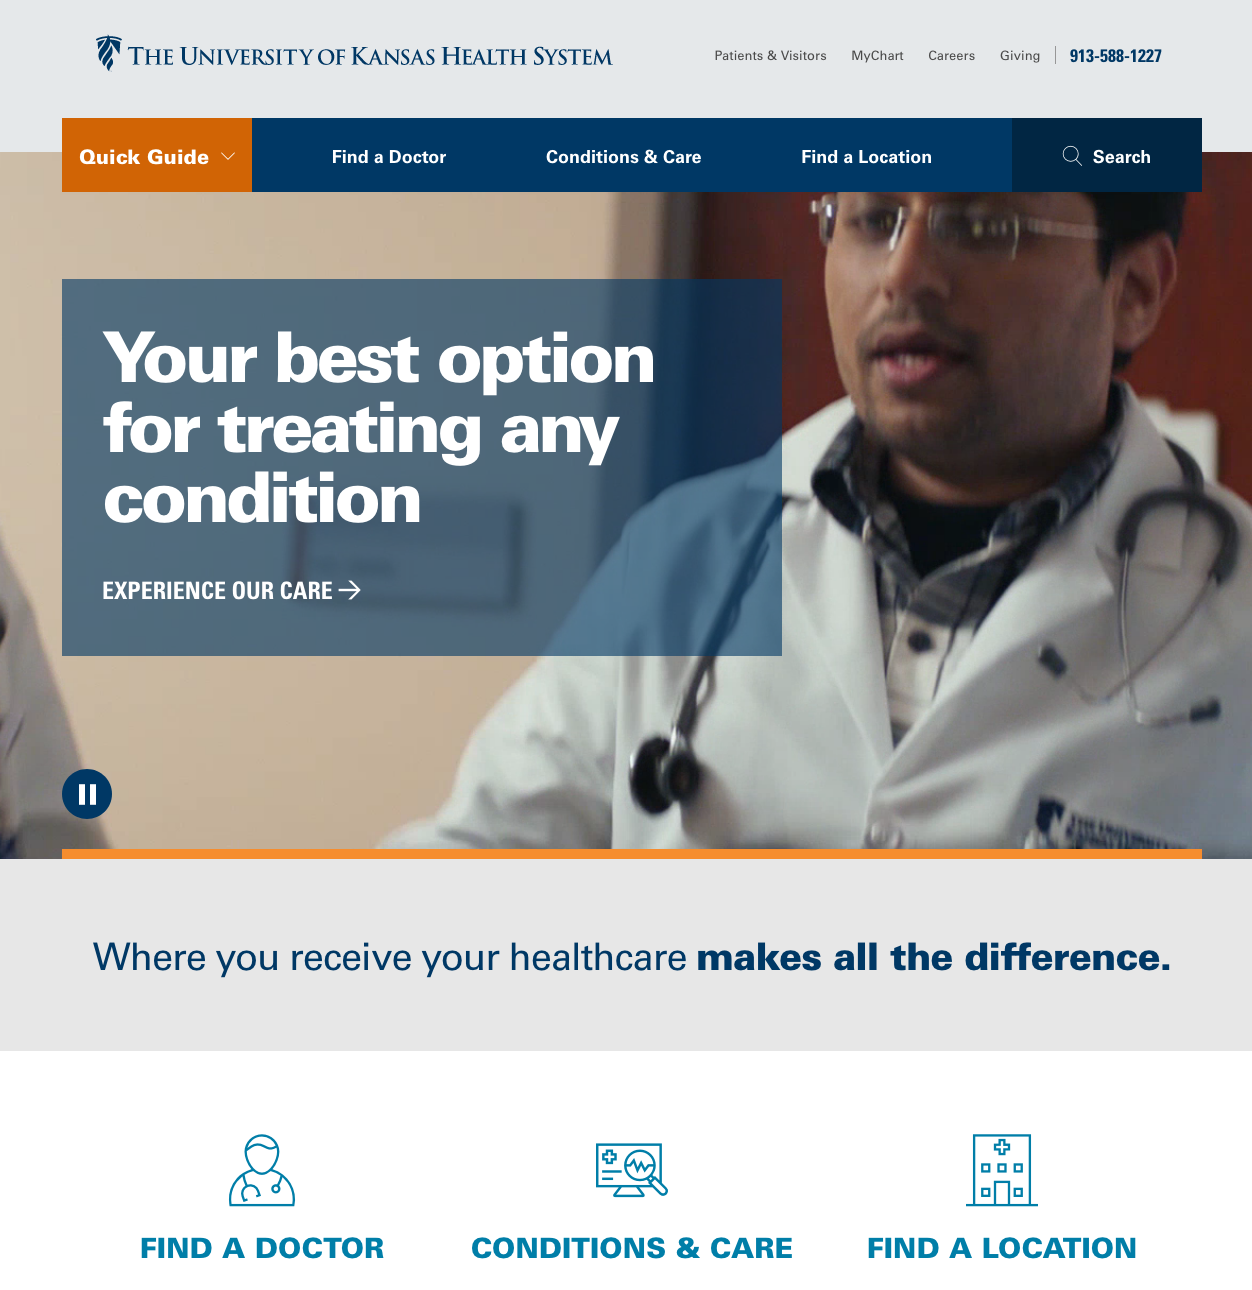 The University of Kansas Health System Website